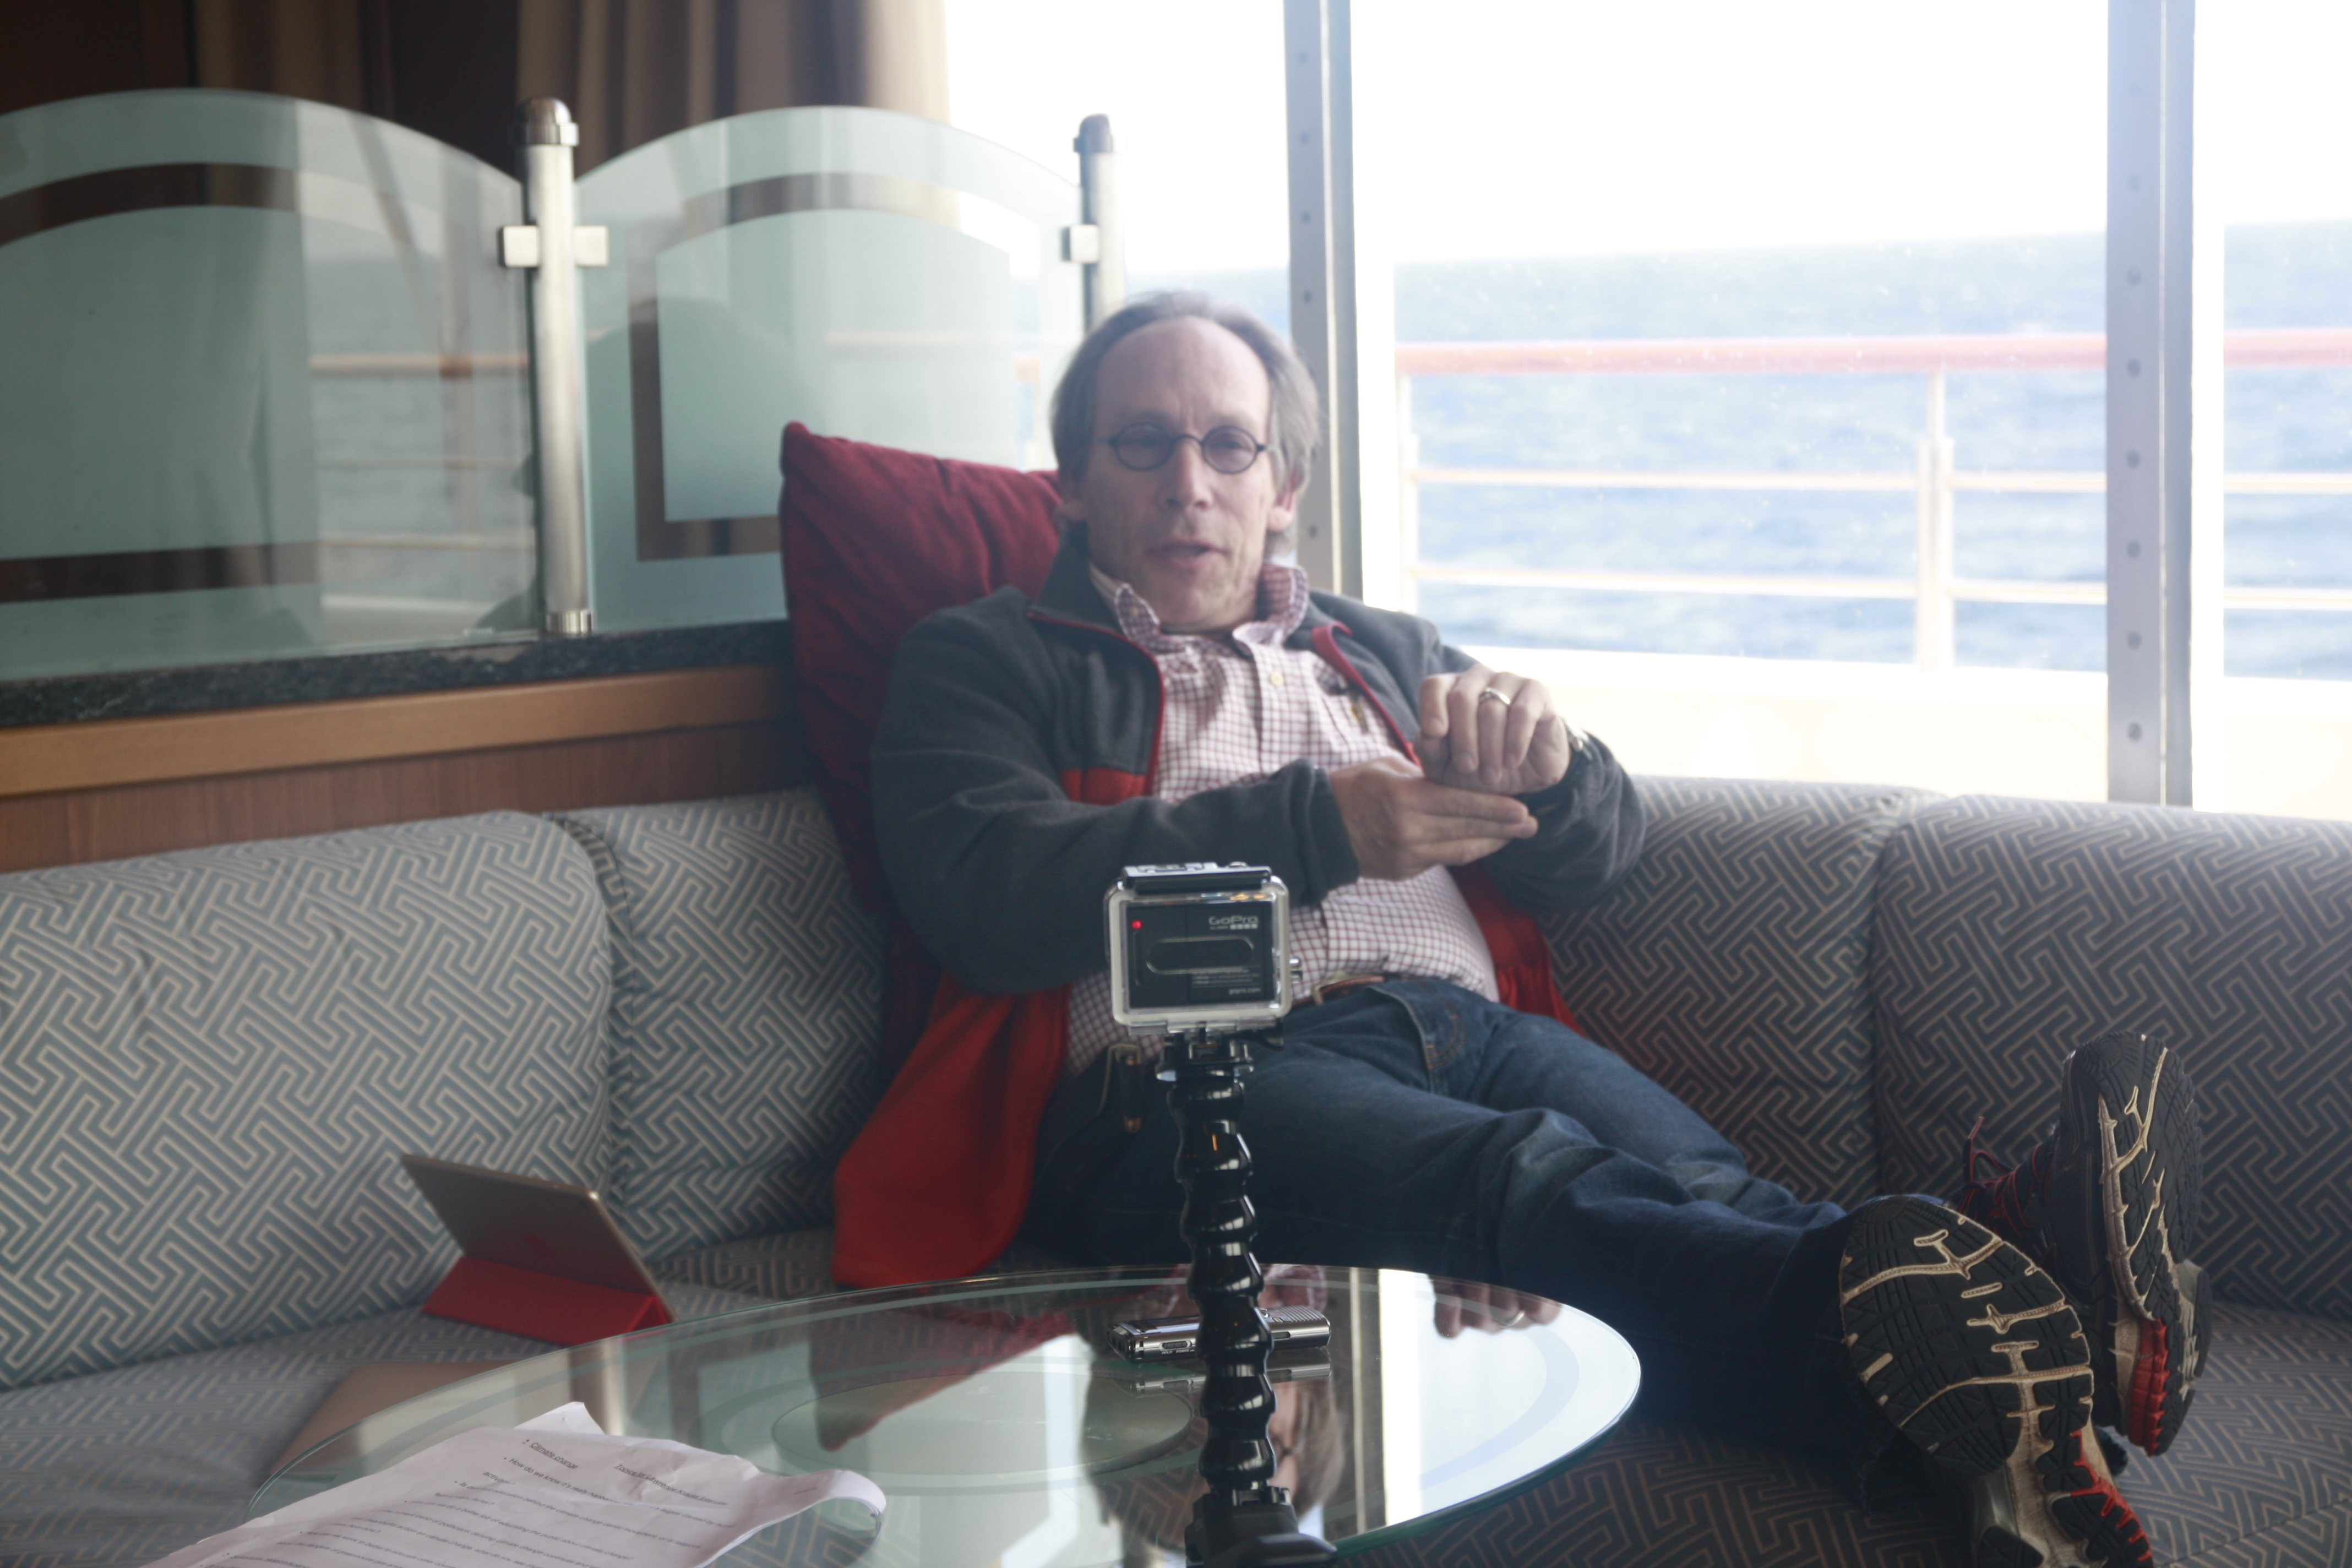 Lawrence Krauss during my interview with him (Photo credit: Michelle Iwen)